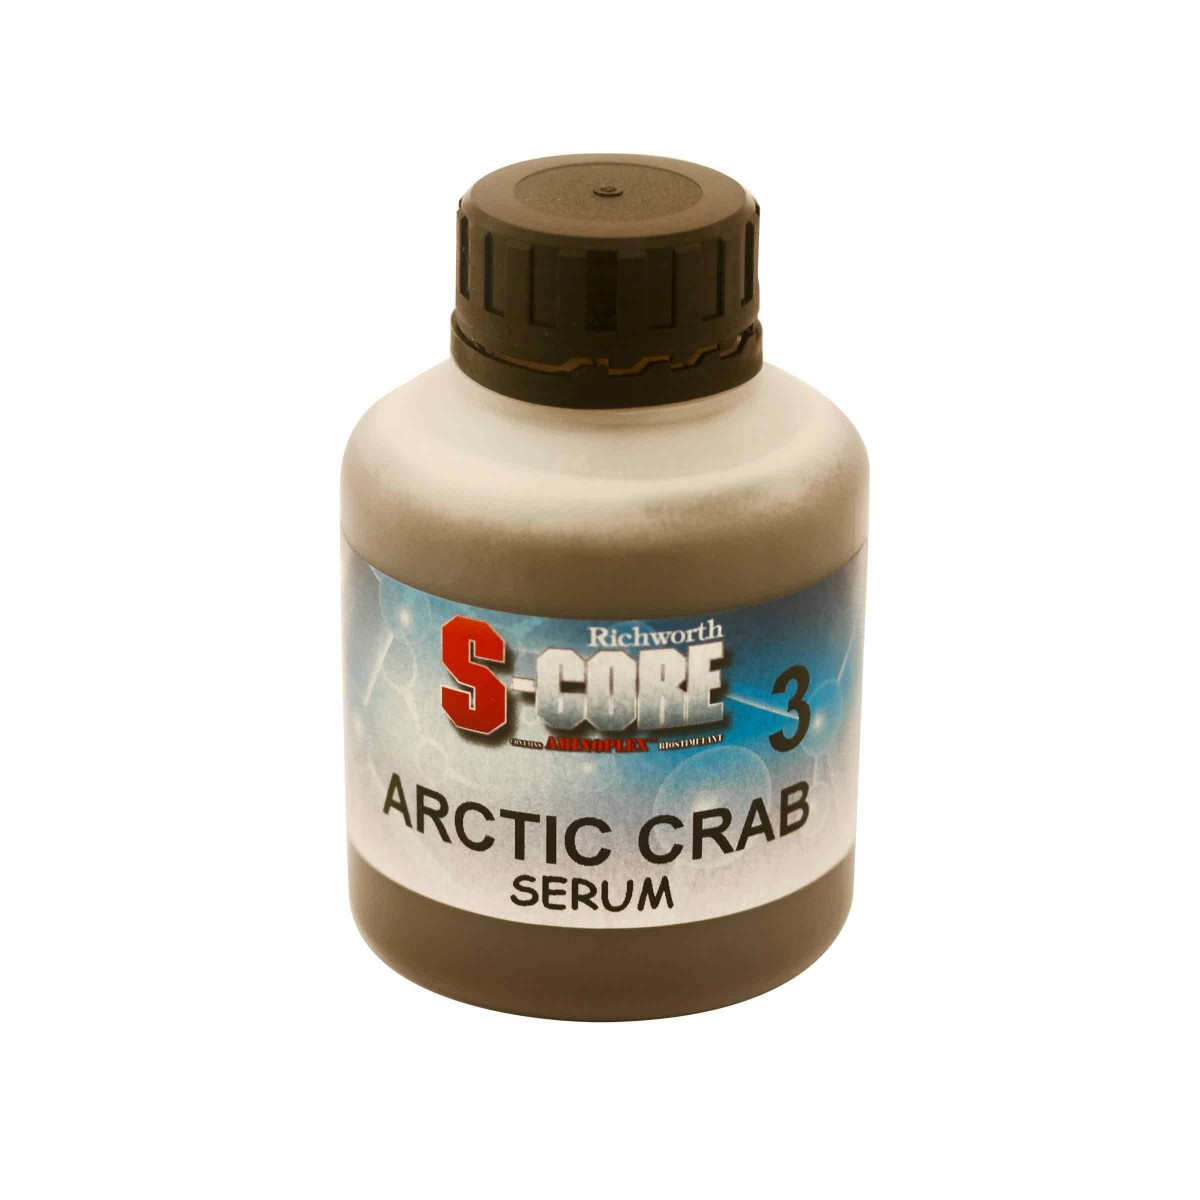 S Core3 Arctic Crab Serum